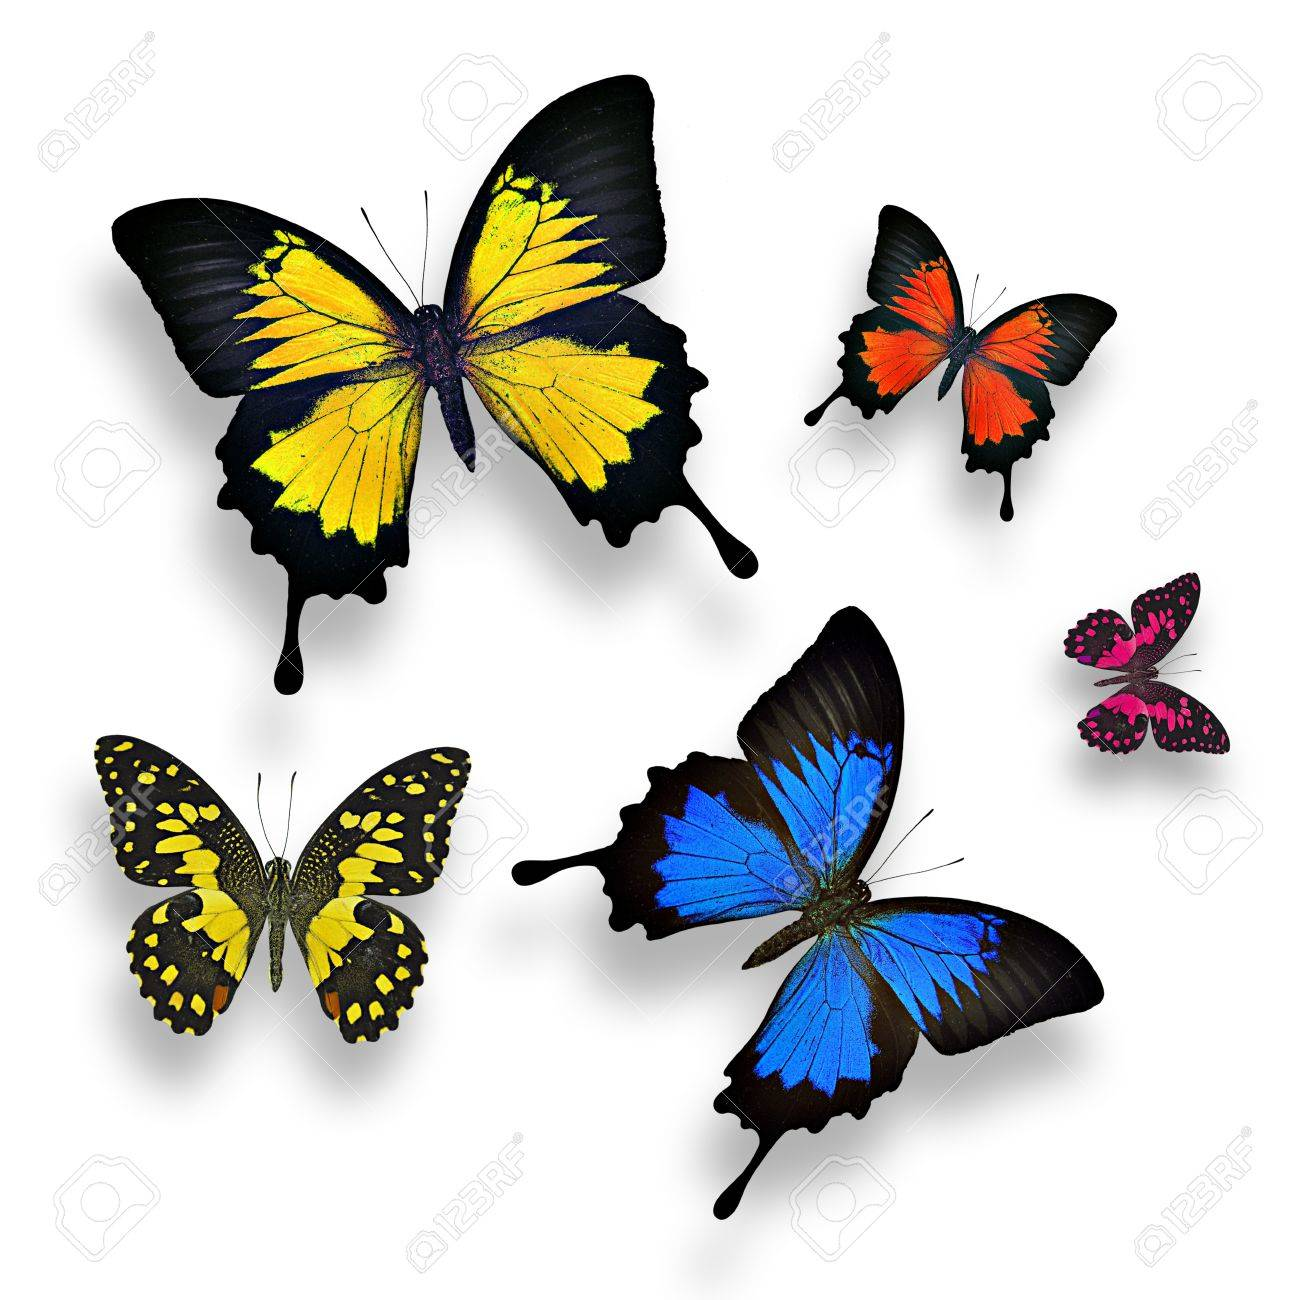 Collection Of Colorful Butterflies On White Background Stock Photo ...